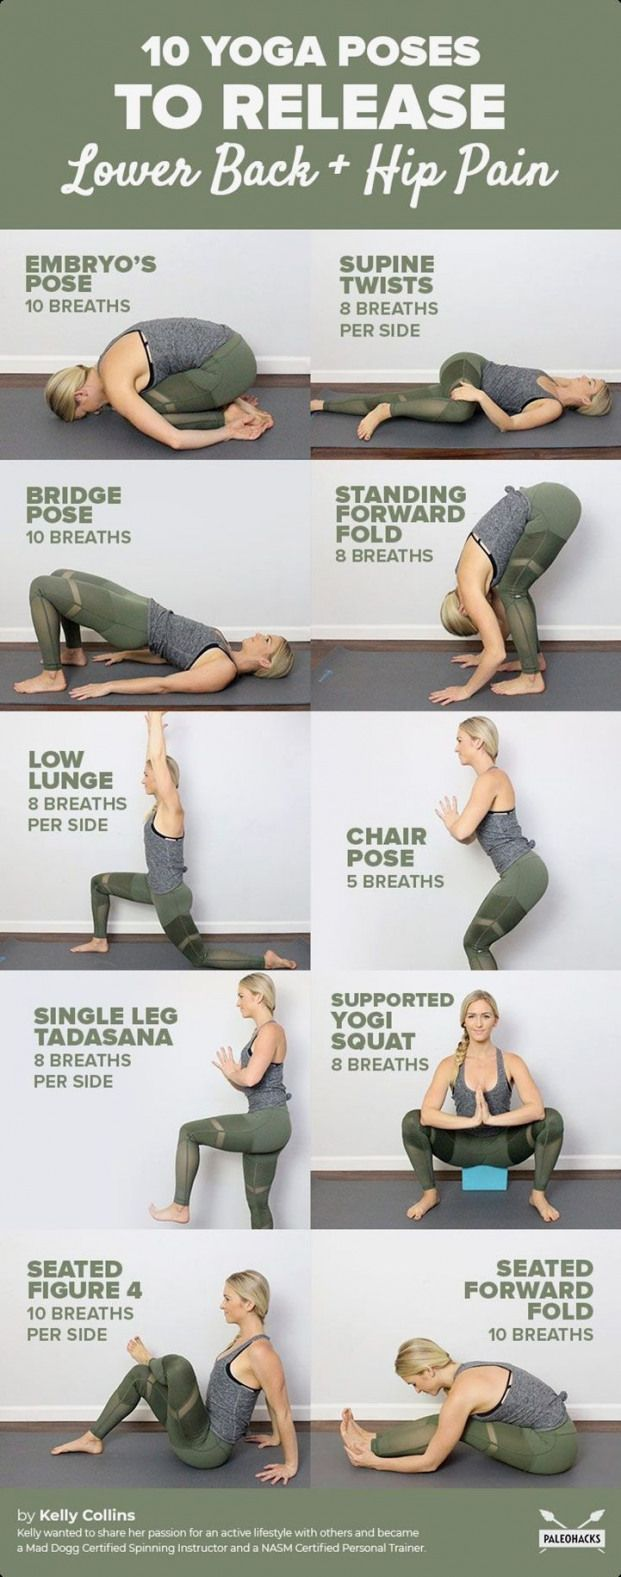 12+ Yoga poses to relieve hip pain ideas